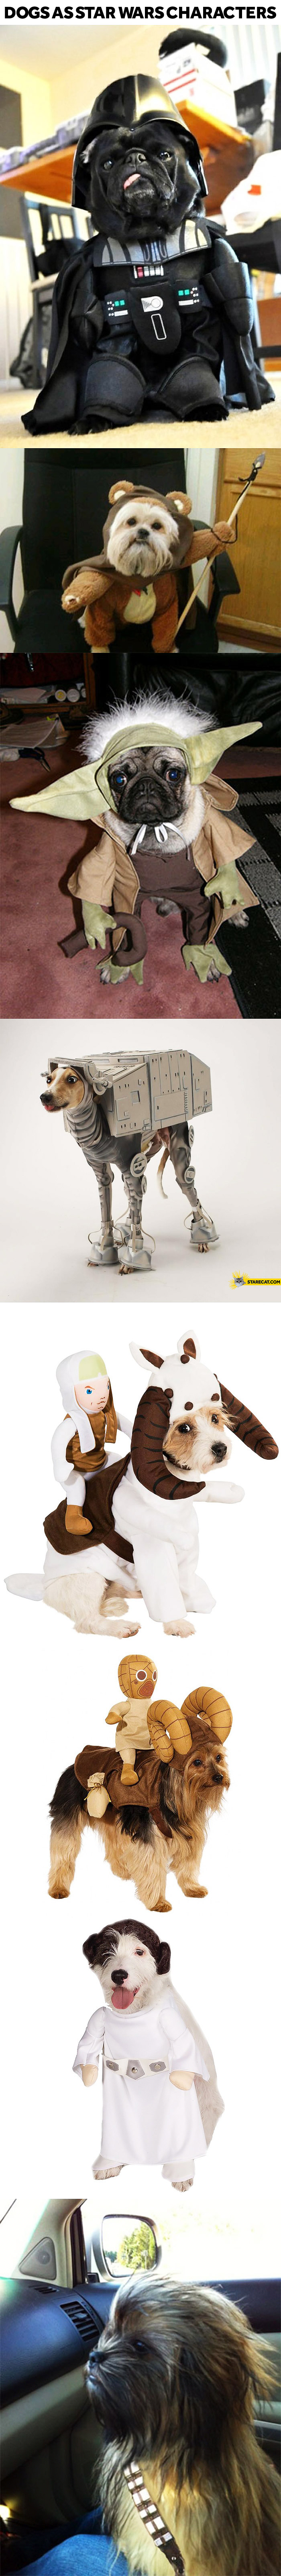 Dog versions of Star Wars characters cosplay costumes